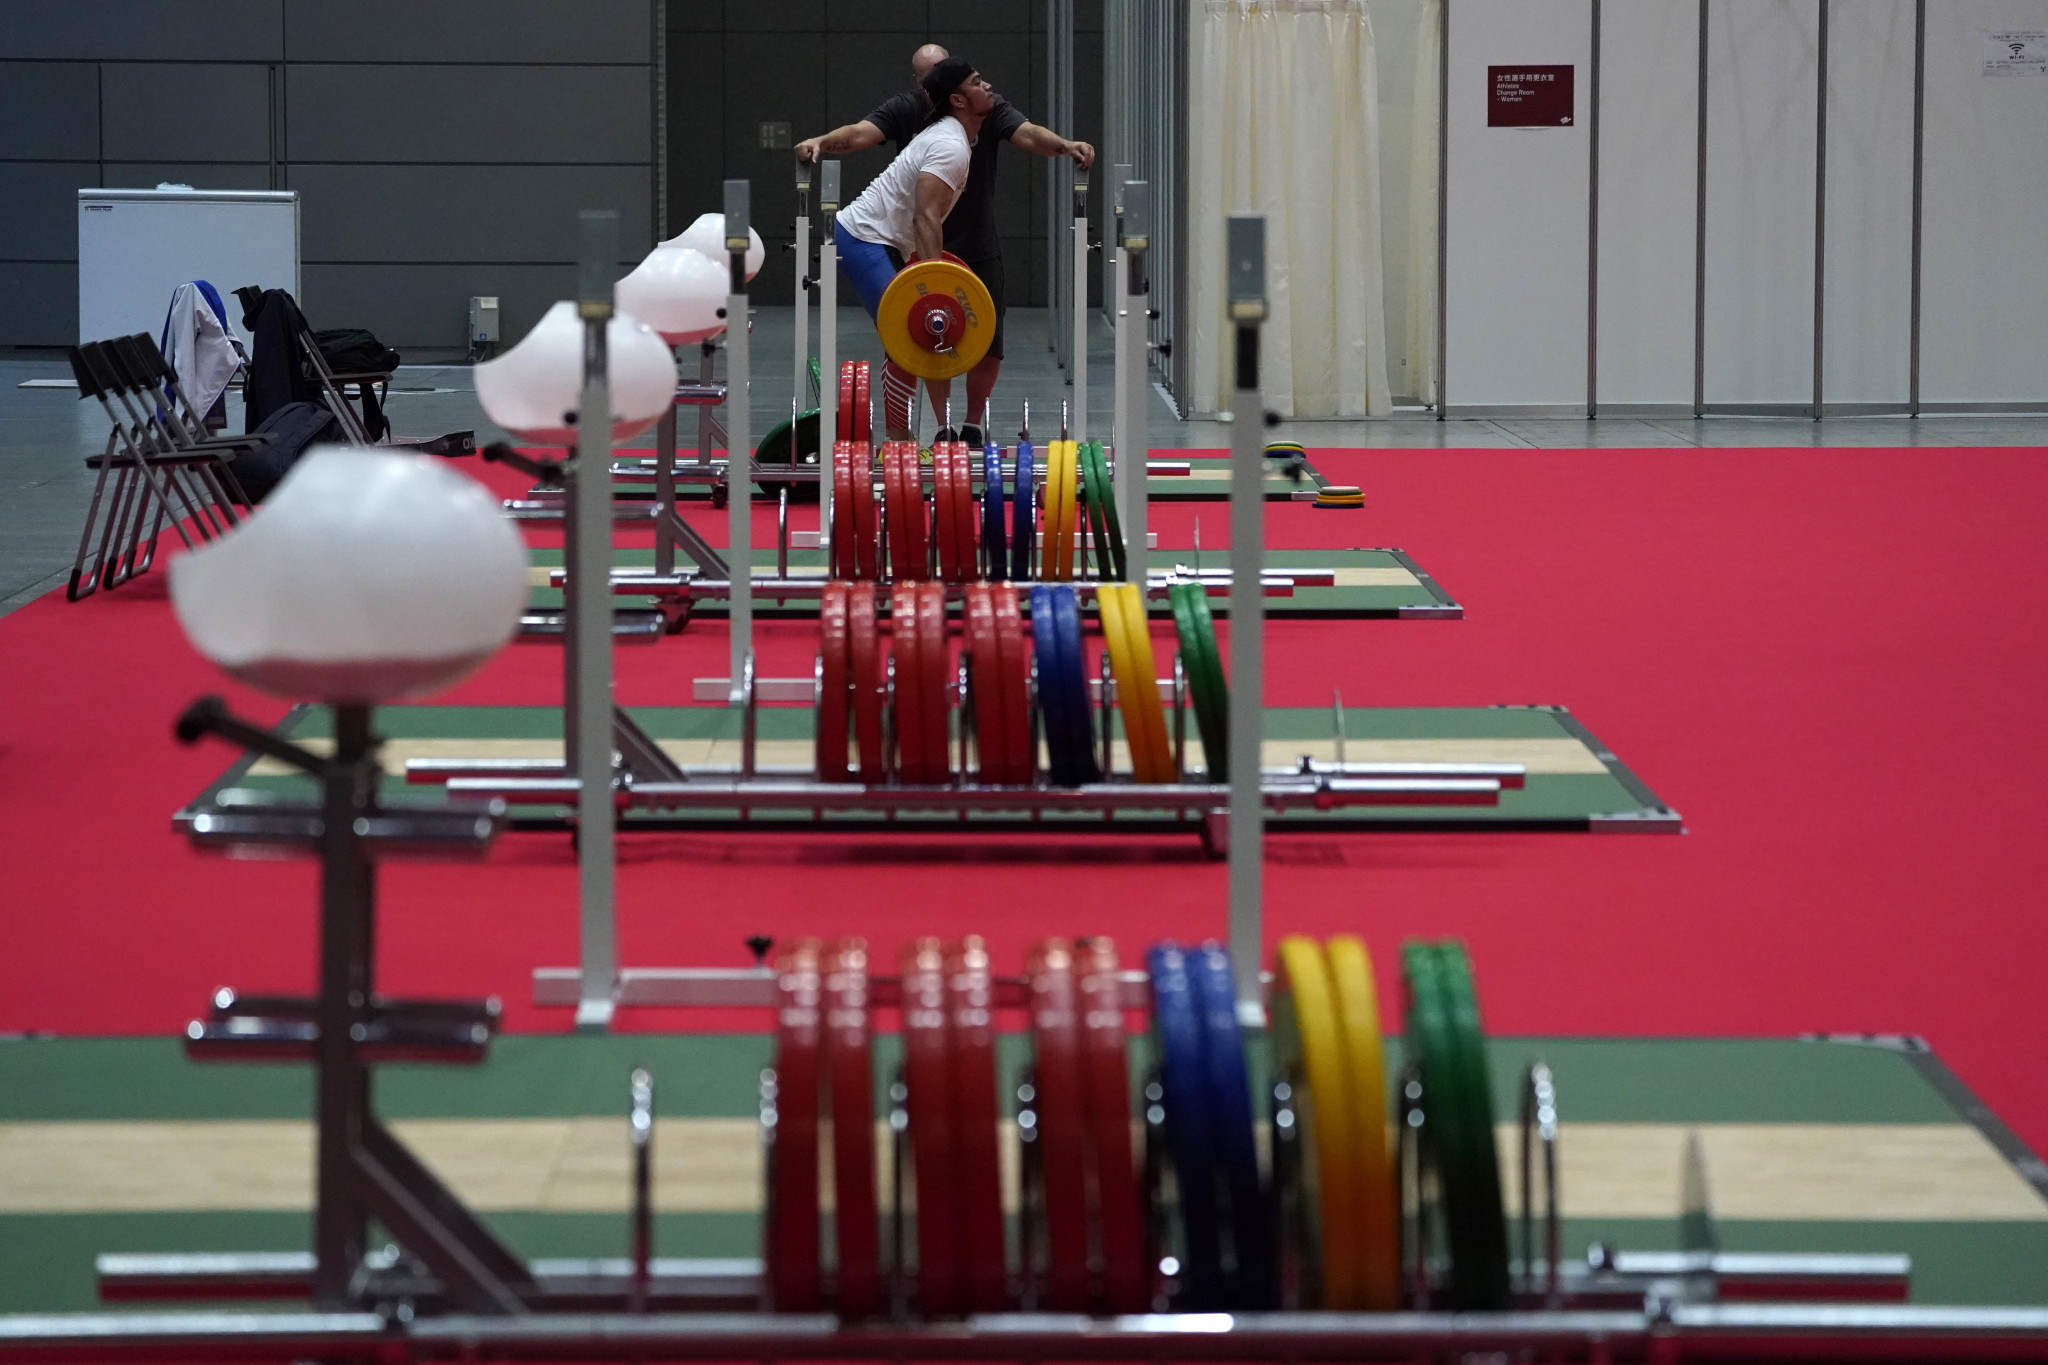 Laurel Hubbard's participation has led to a surge in interest in the women's over 87kg weightlifting event ©Getty Images